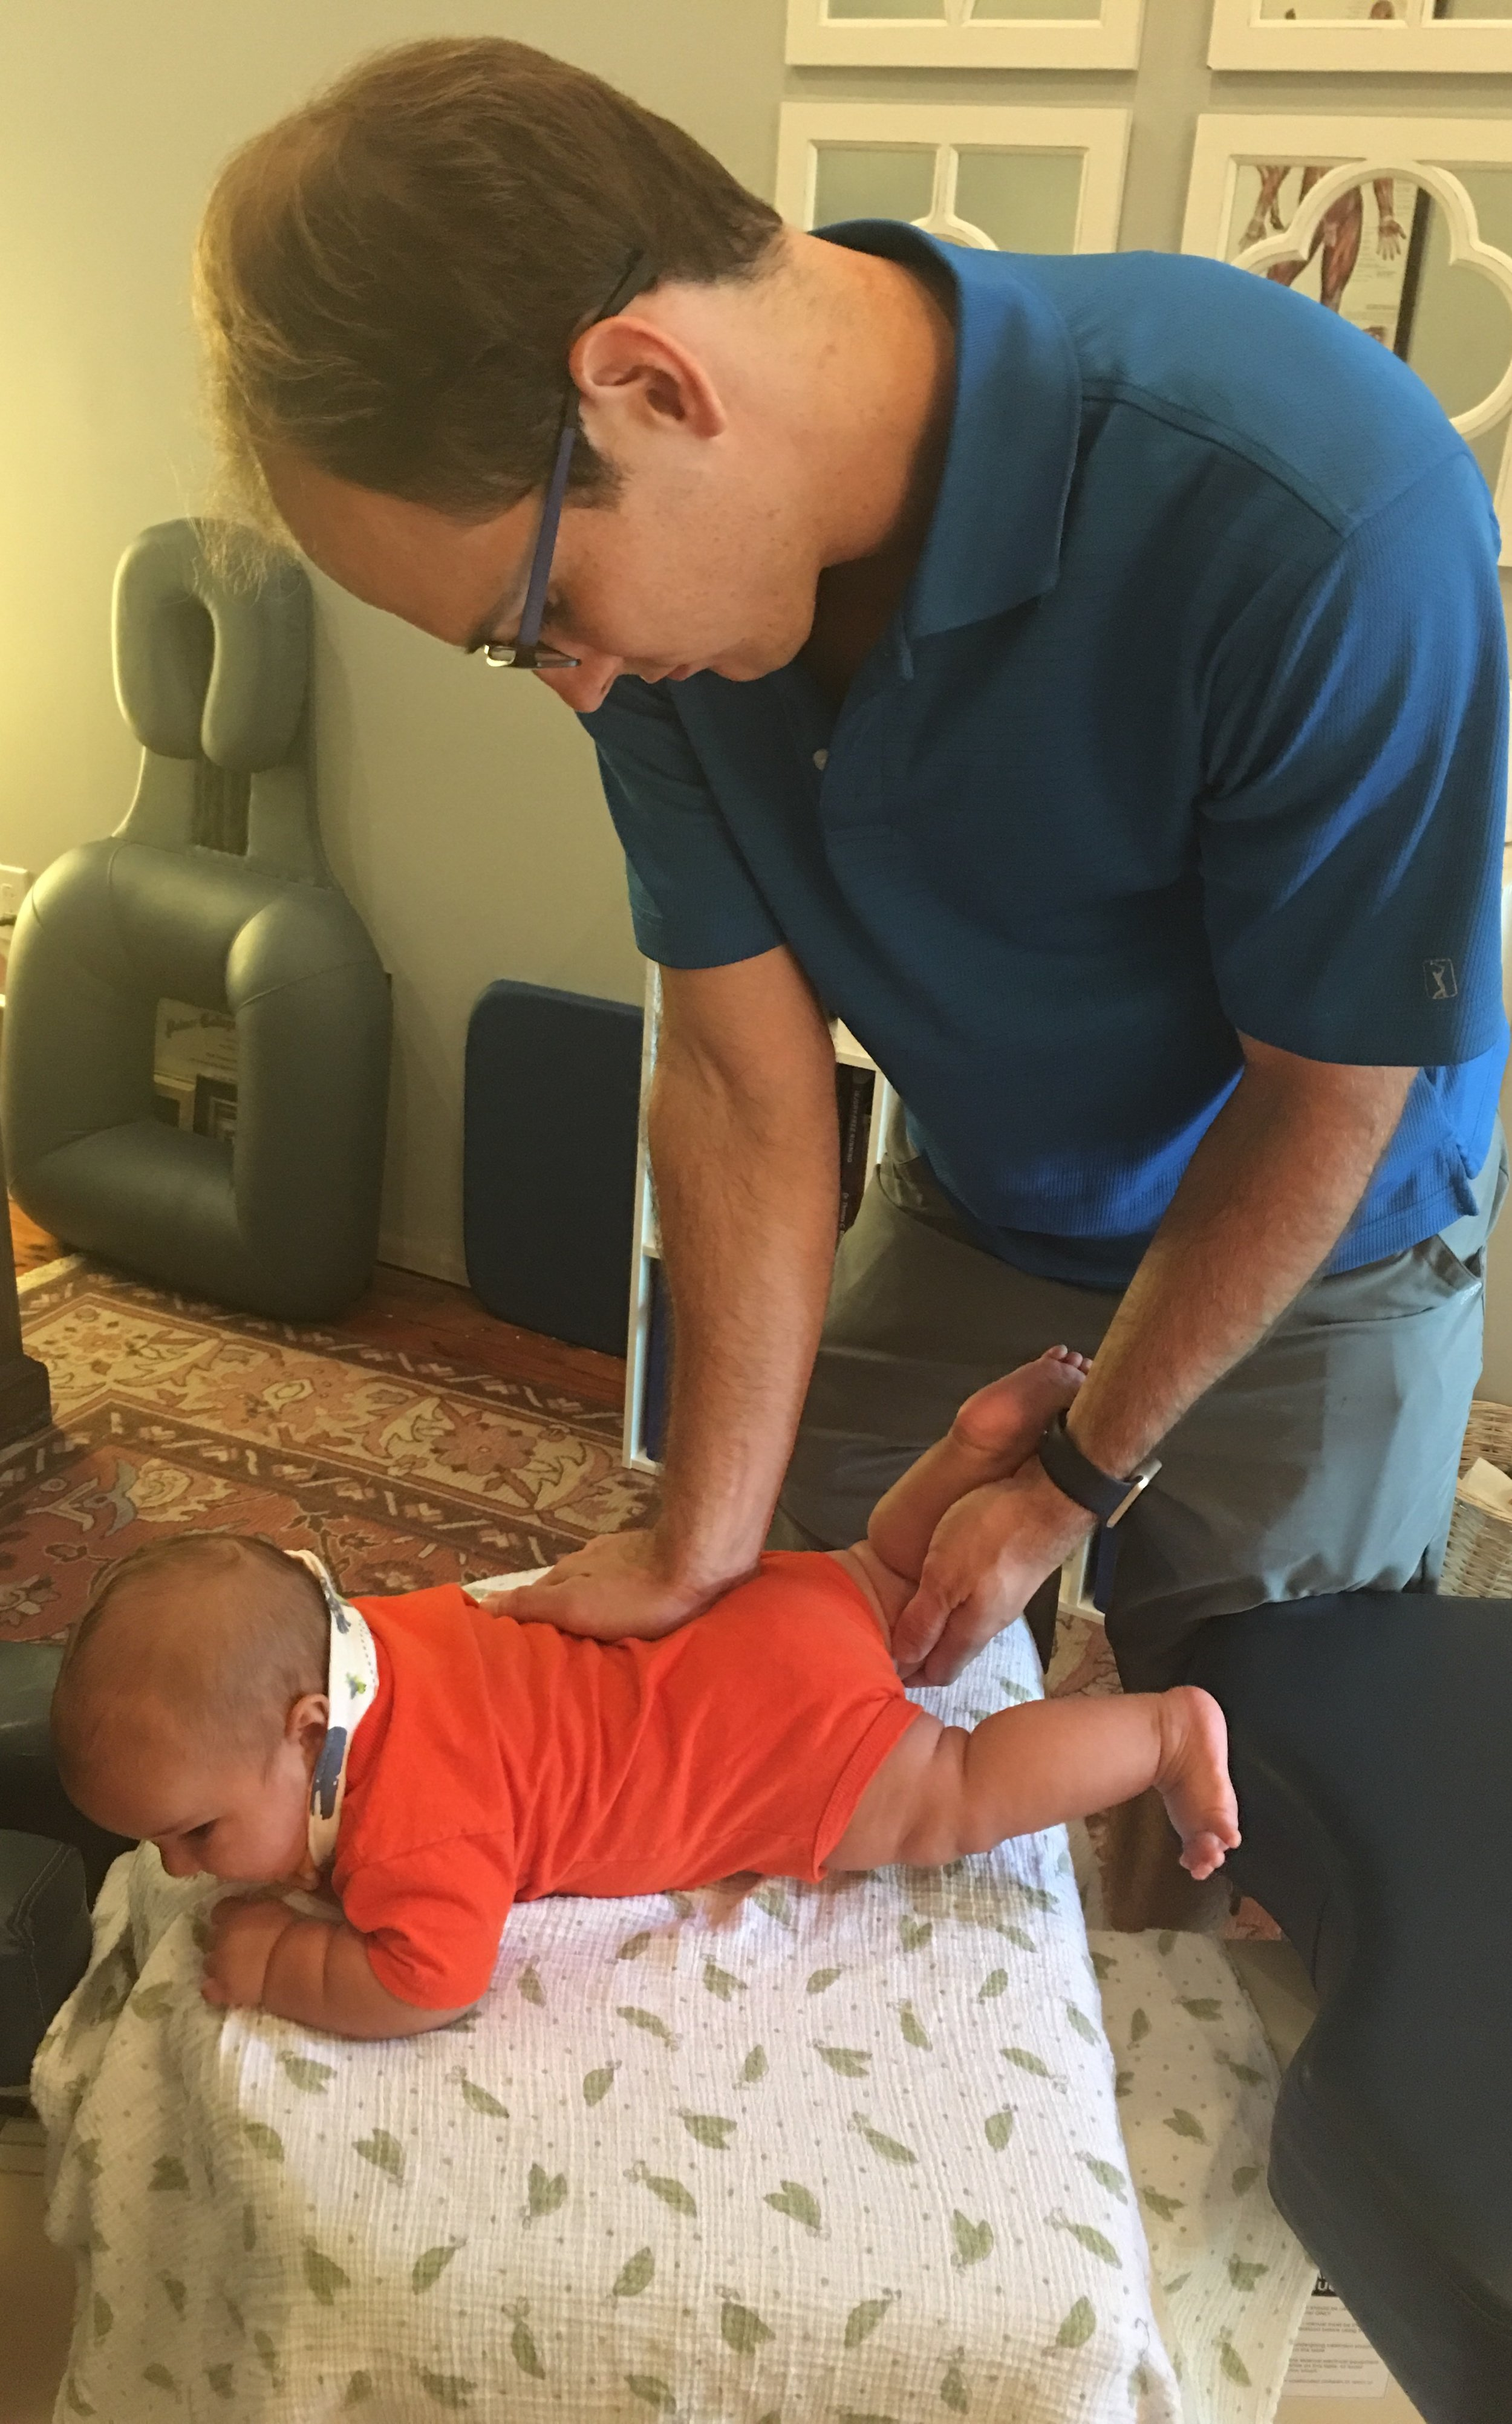 Dr. Scott evaluating the hips and pelvic of a 14 week baby.